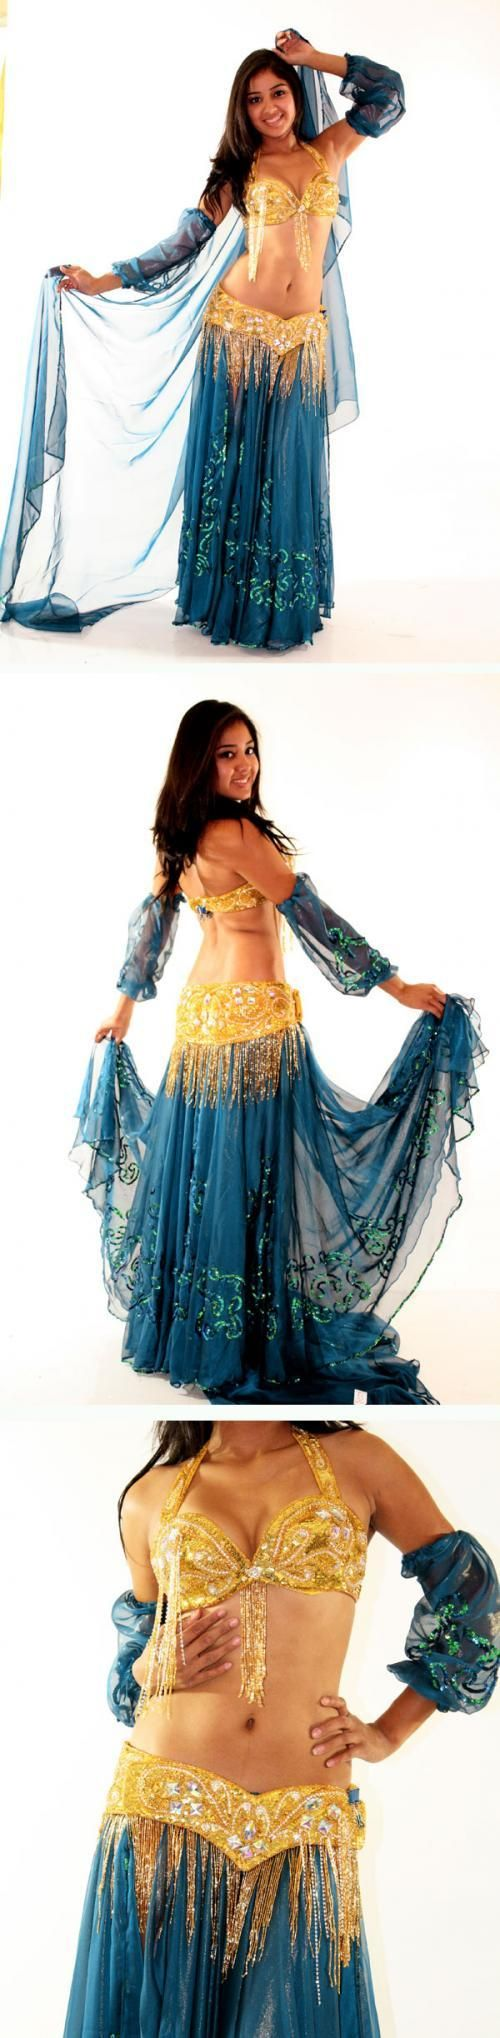 LEARN TO BELLY DANCE WITH DINARA - YouTube